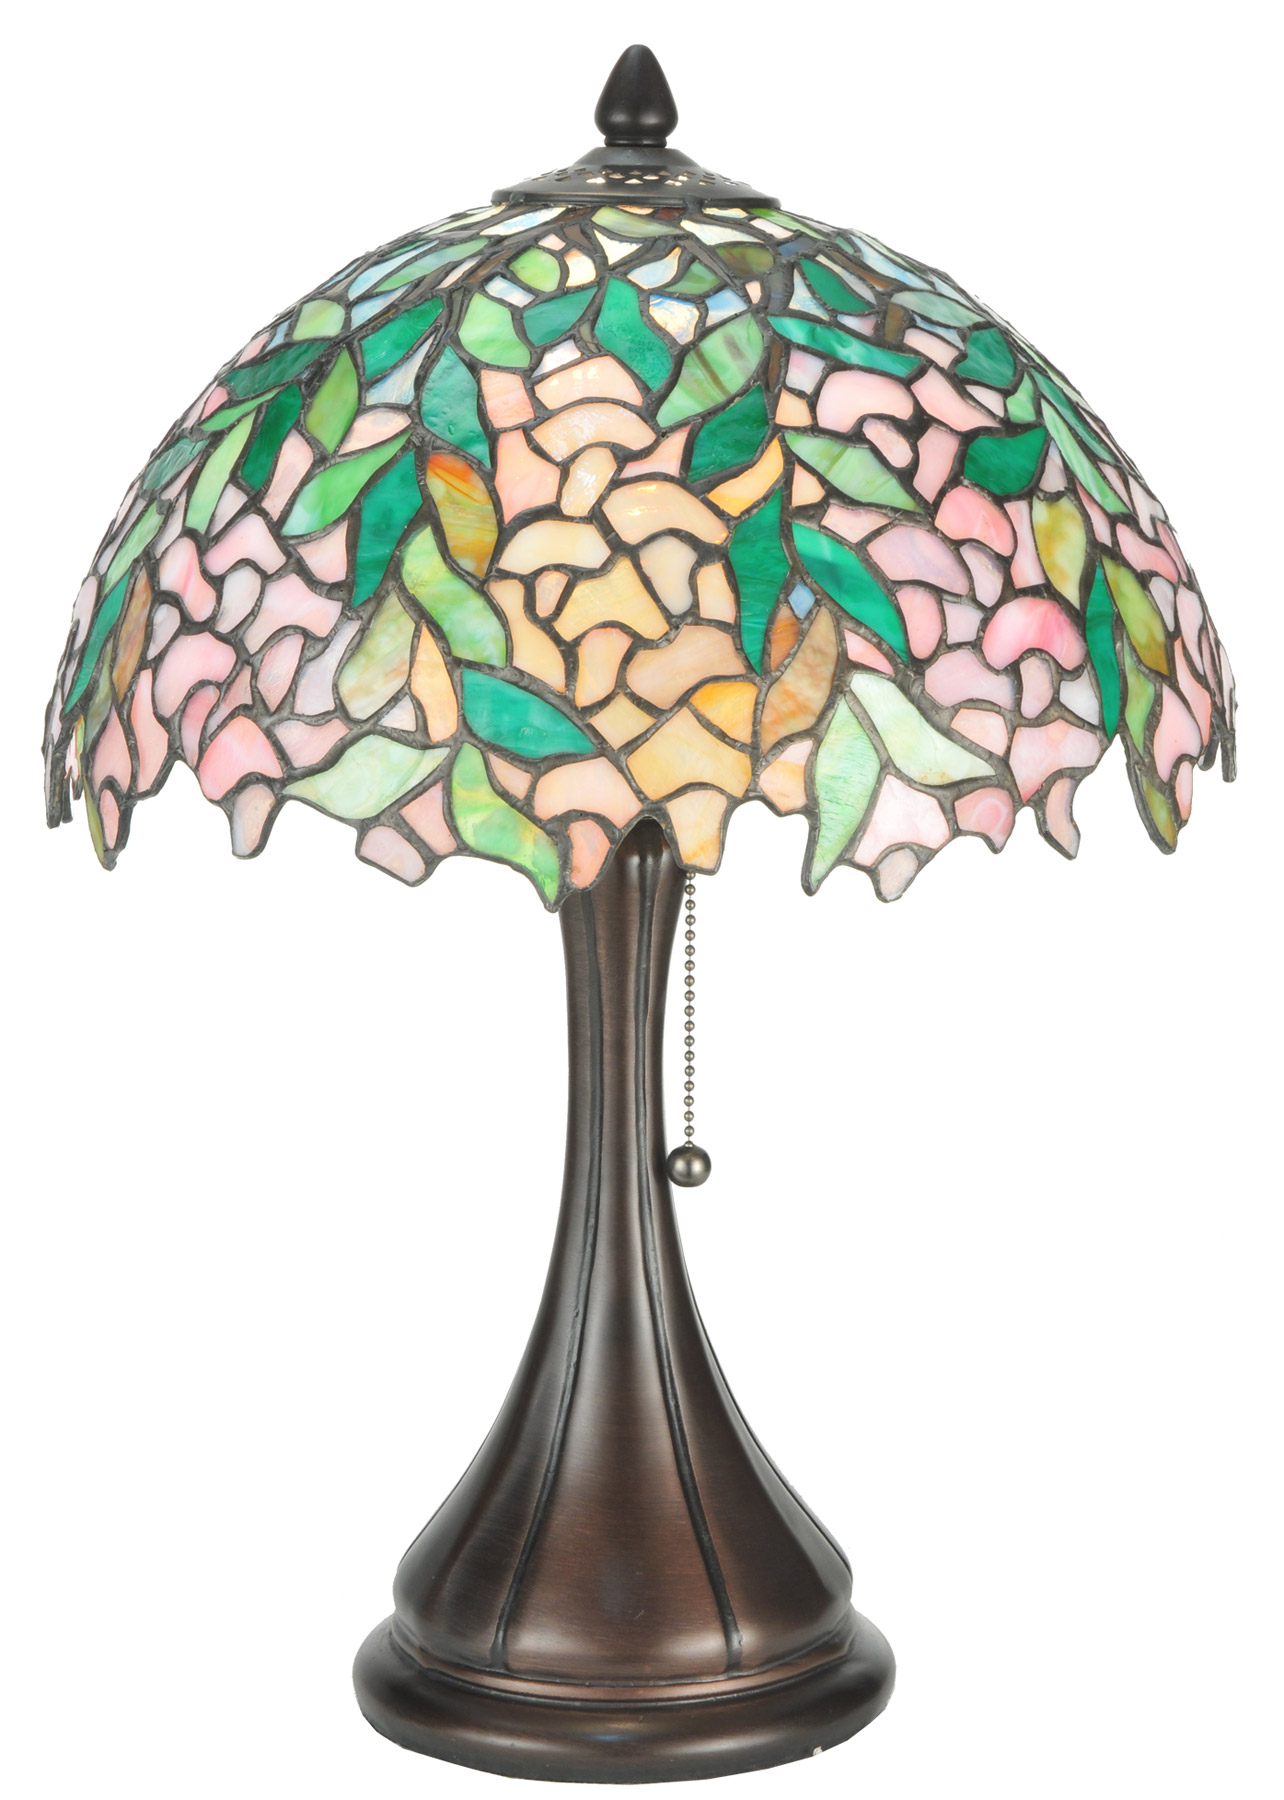 Meyda 110323 Tiffany Laburnum Accent Lamp